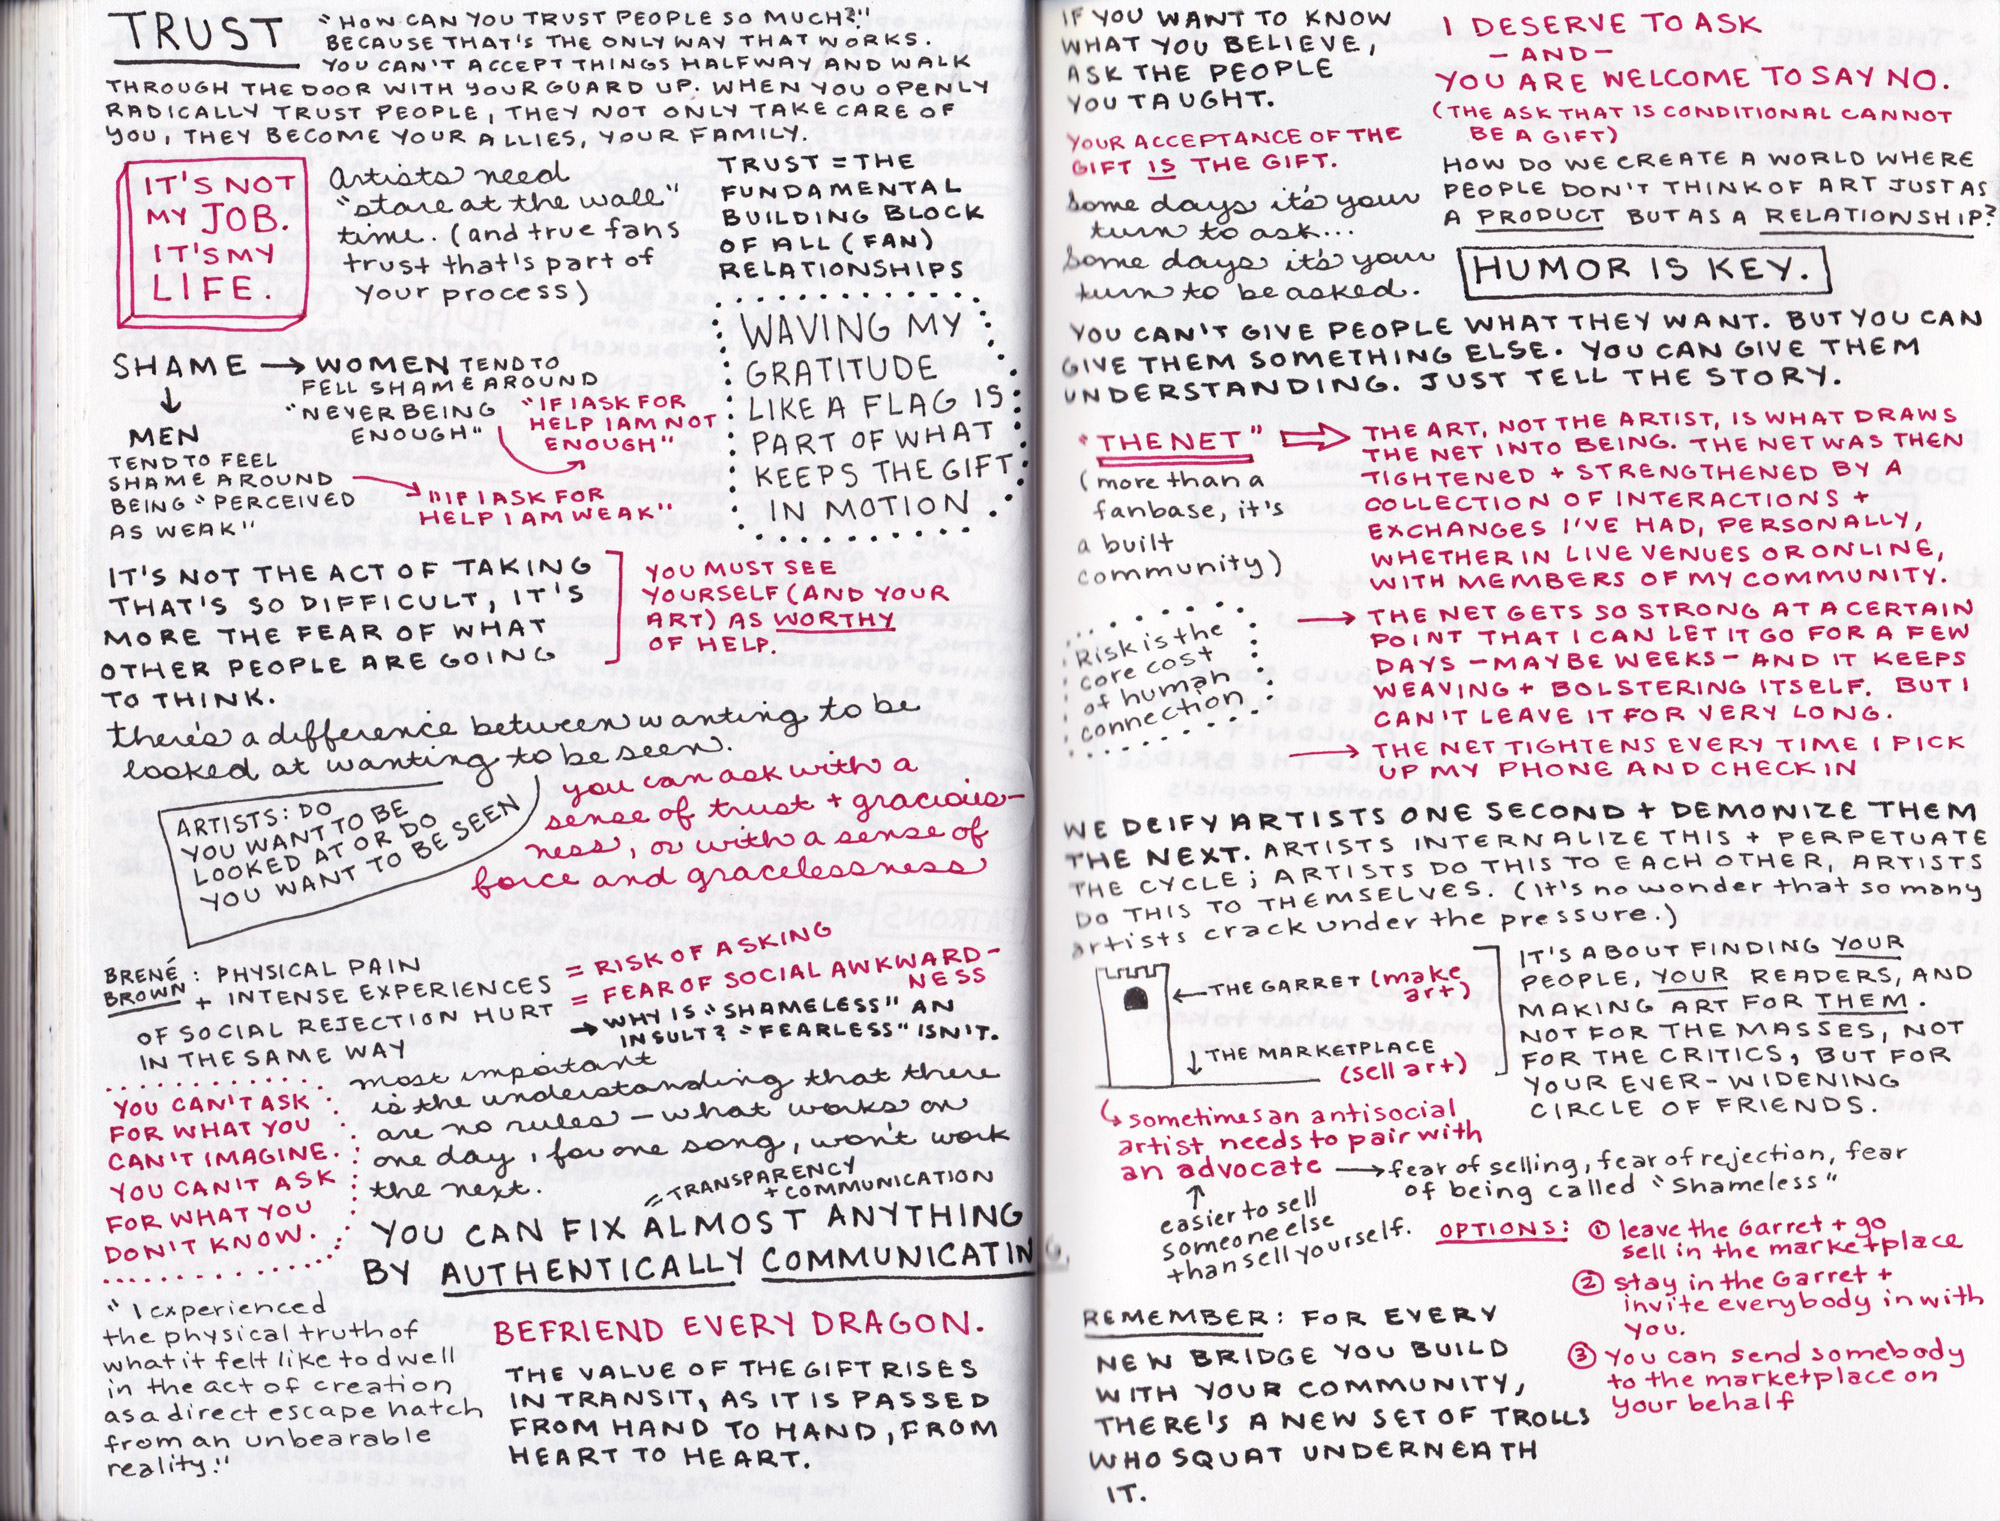 Book Notes: The Art of Asking - MAKE YOUR ART WORK